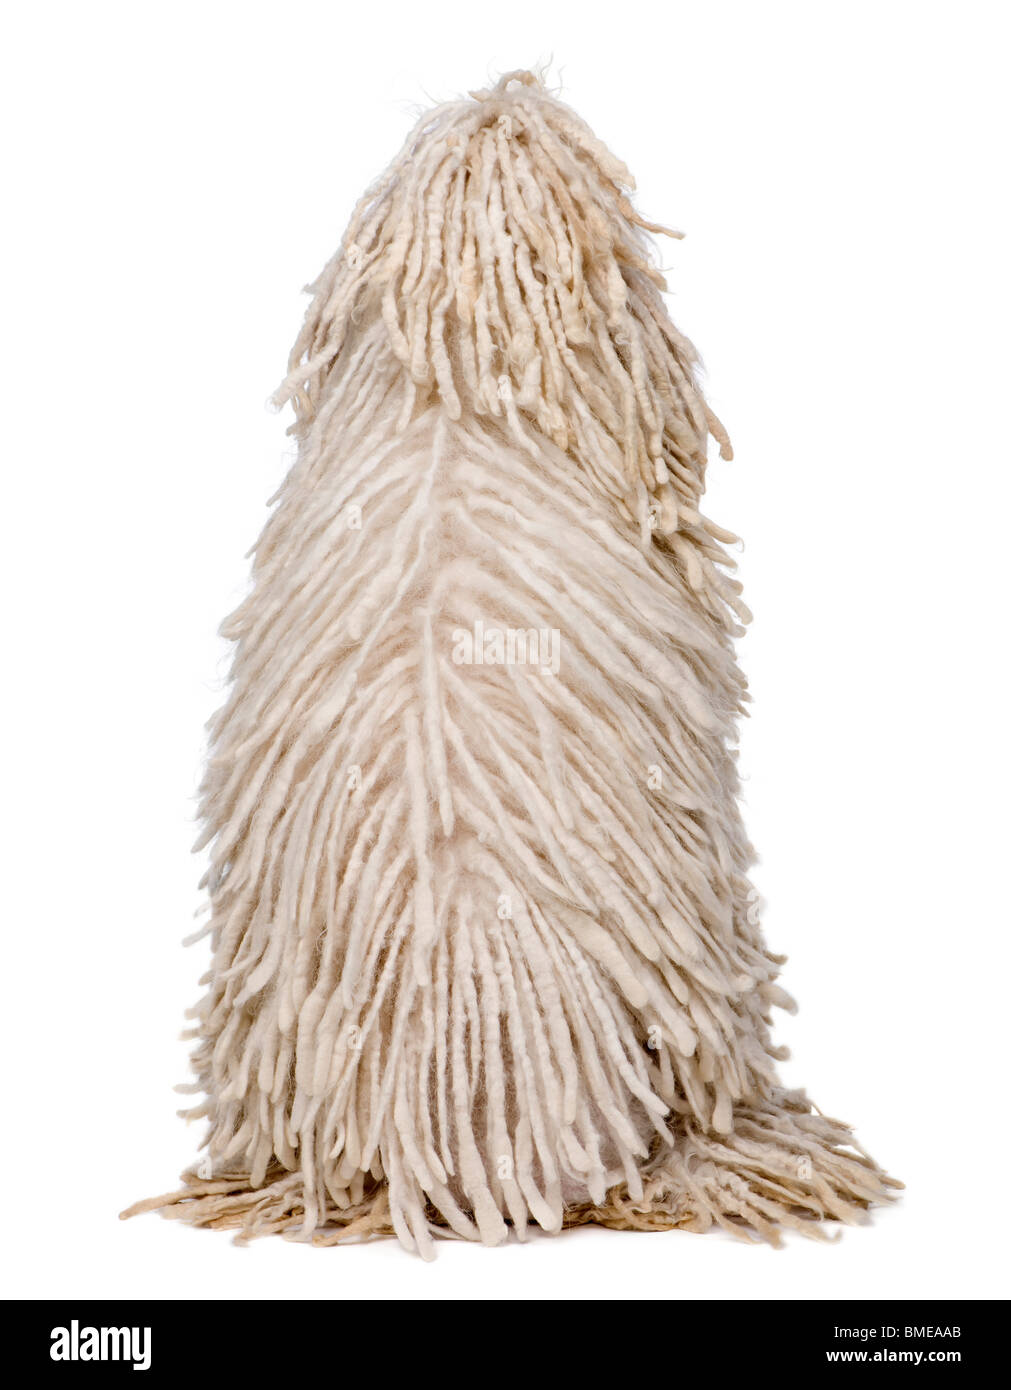 Rear view of White Corded Standard Poodle sitting in front of white background - Stock Image